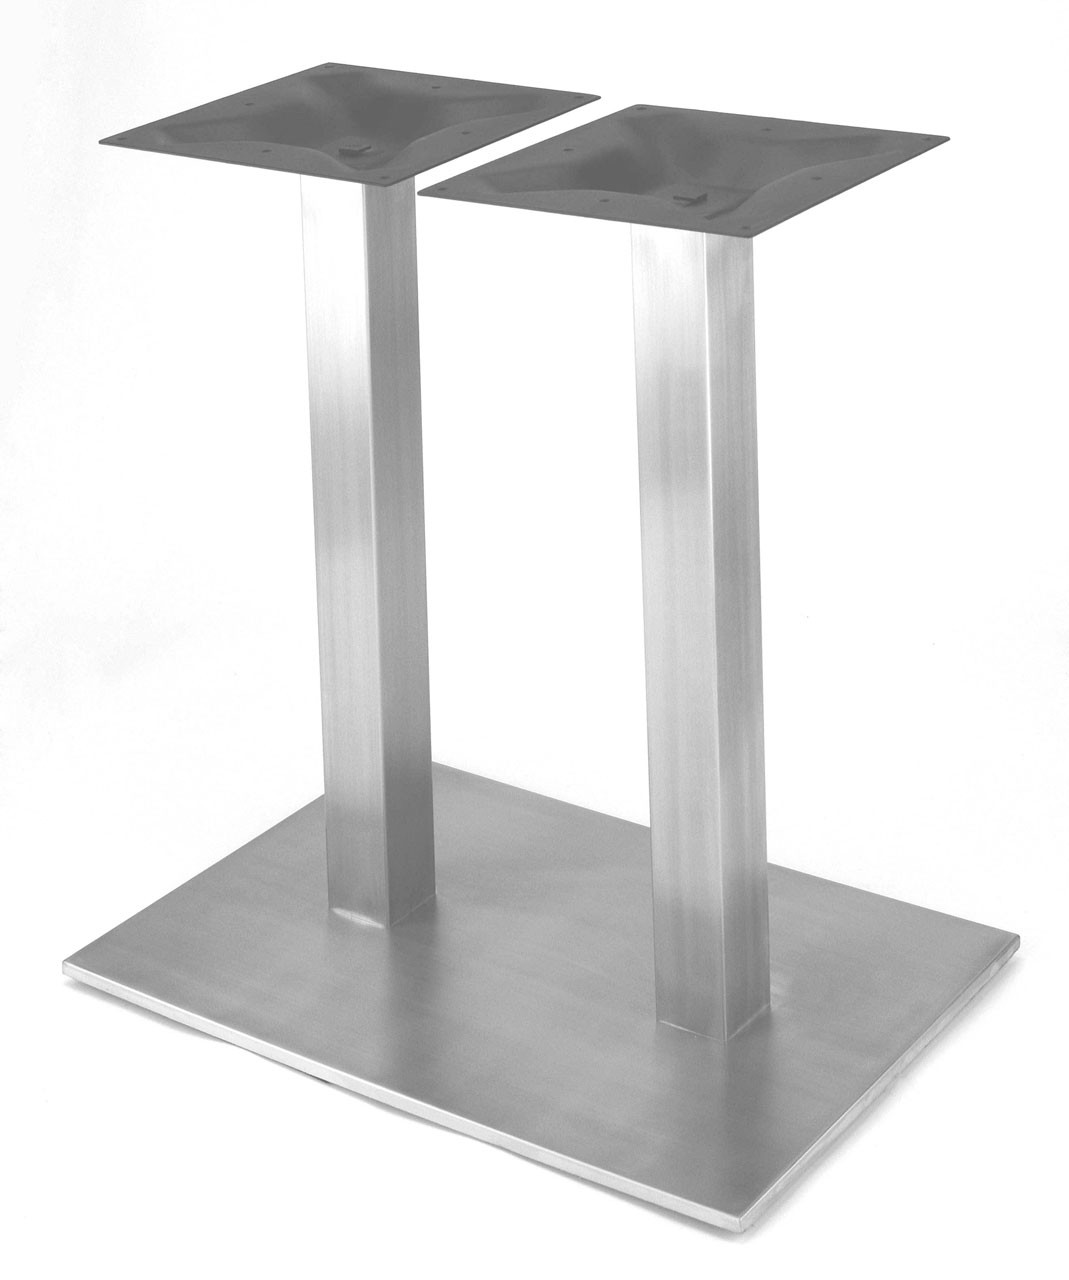 """304 Food Grade Stainless Steel, 40.75"""" Counter Height, 18 x 27.5"""" Rectangle Style Pedestal Base with 2 x Square Columns shown without table top. Suitable for outdoor use with protective spray."""